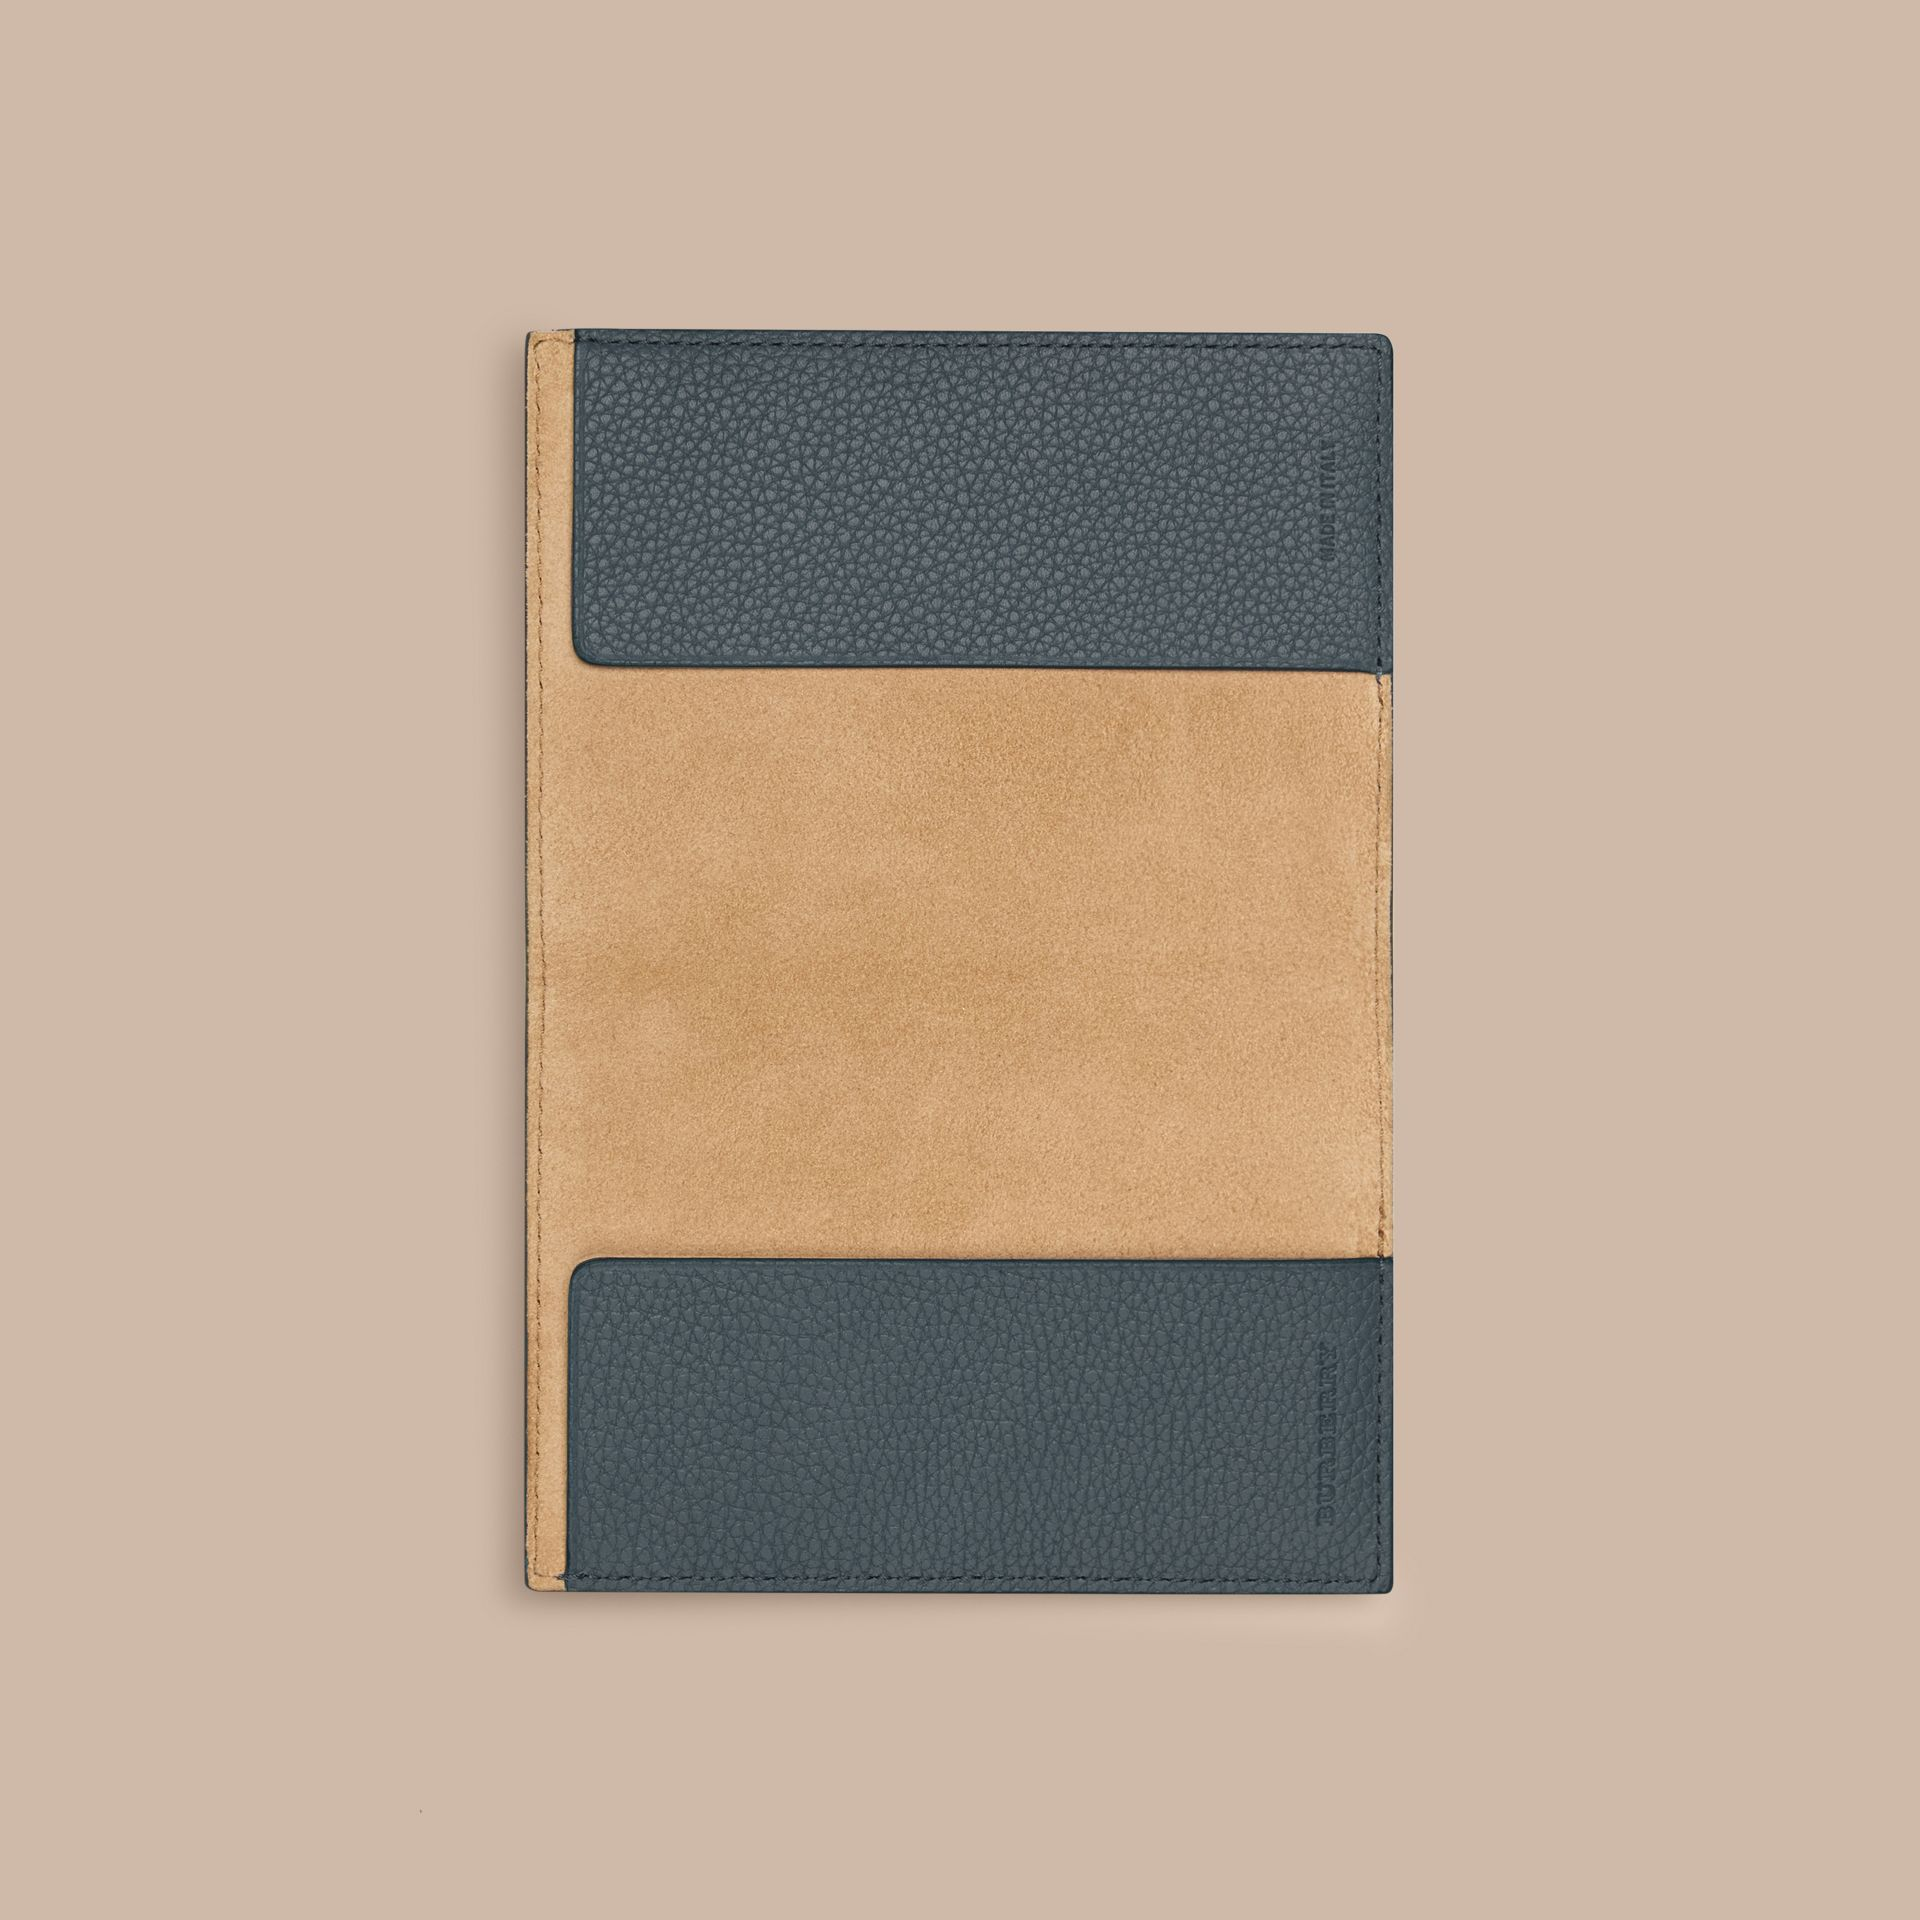 Grainy Leather Passport Cover in Dusty Teal | Burberry United Kingdom - gallery image 2